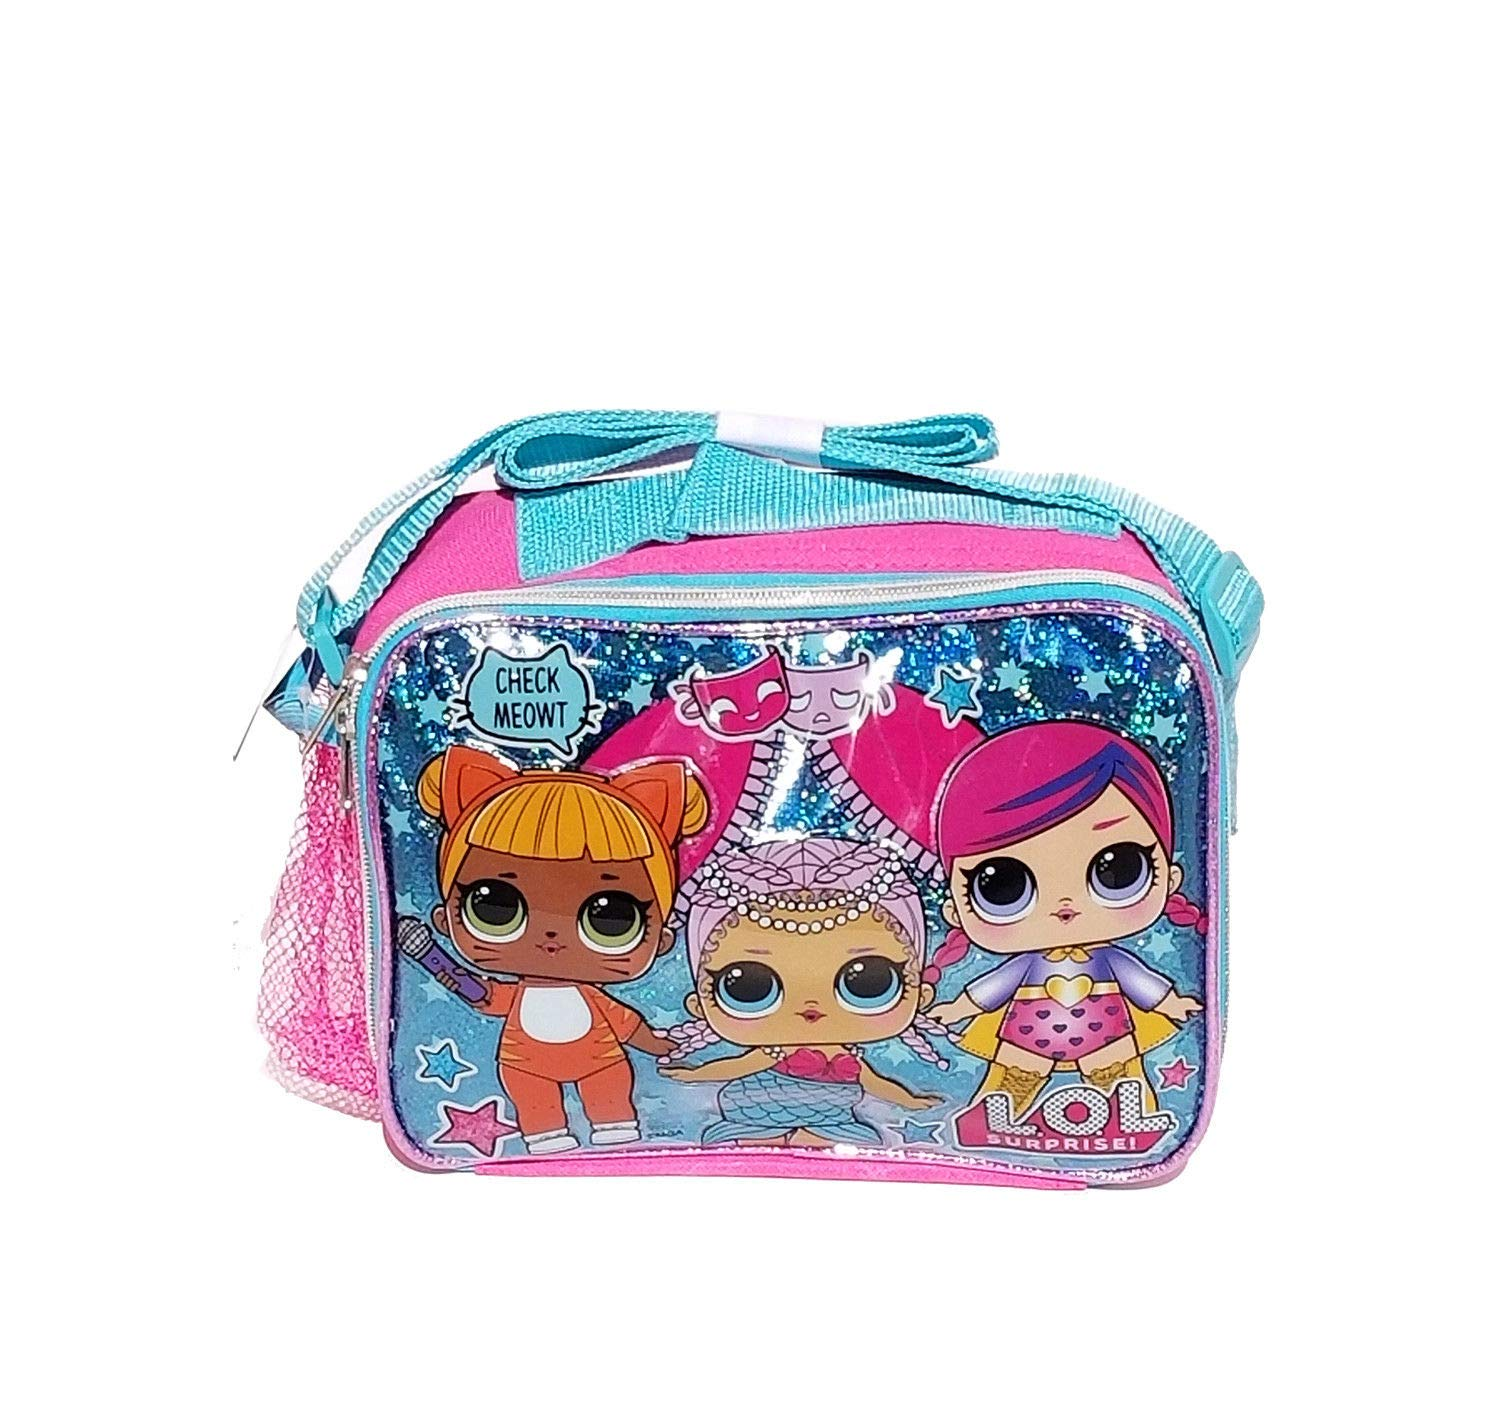 LOL Surprise! Hot Blue Girls' Insulated School Lunch Bag- Miss Bee & Diva